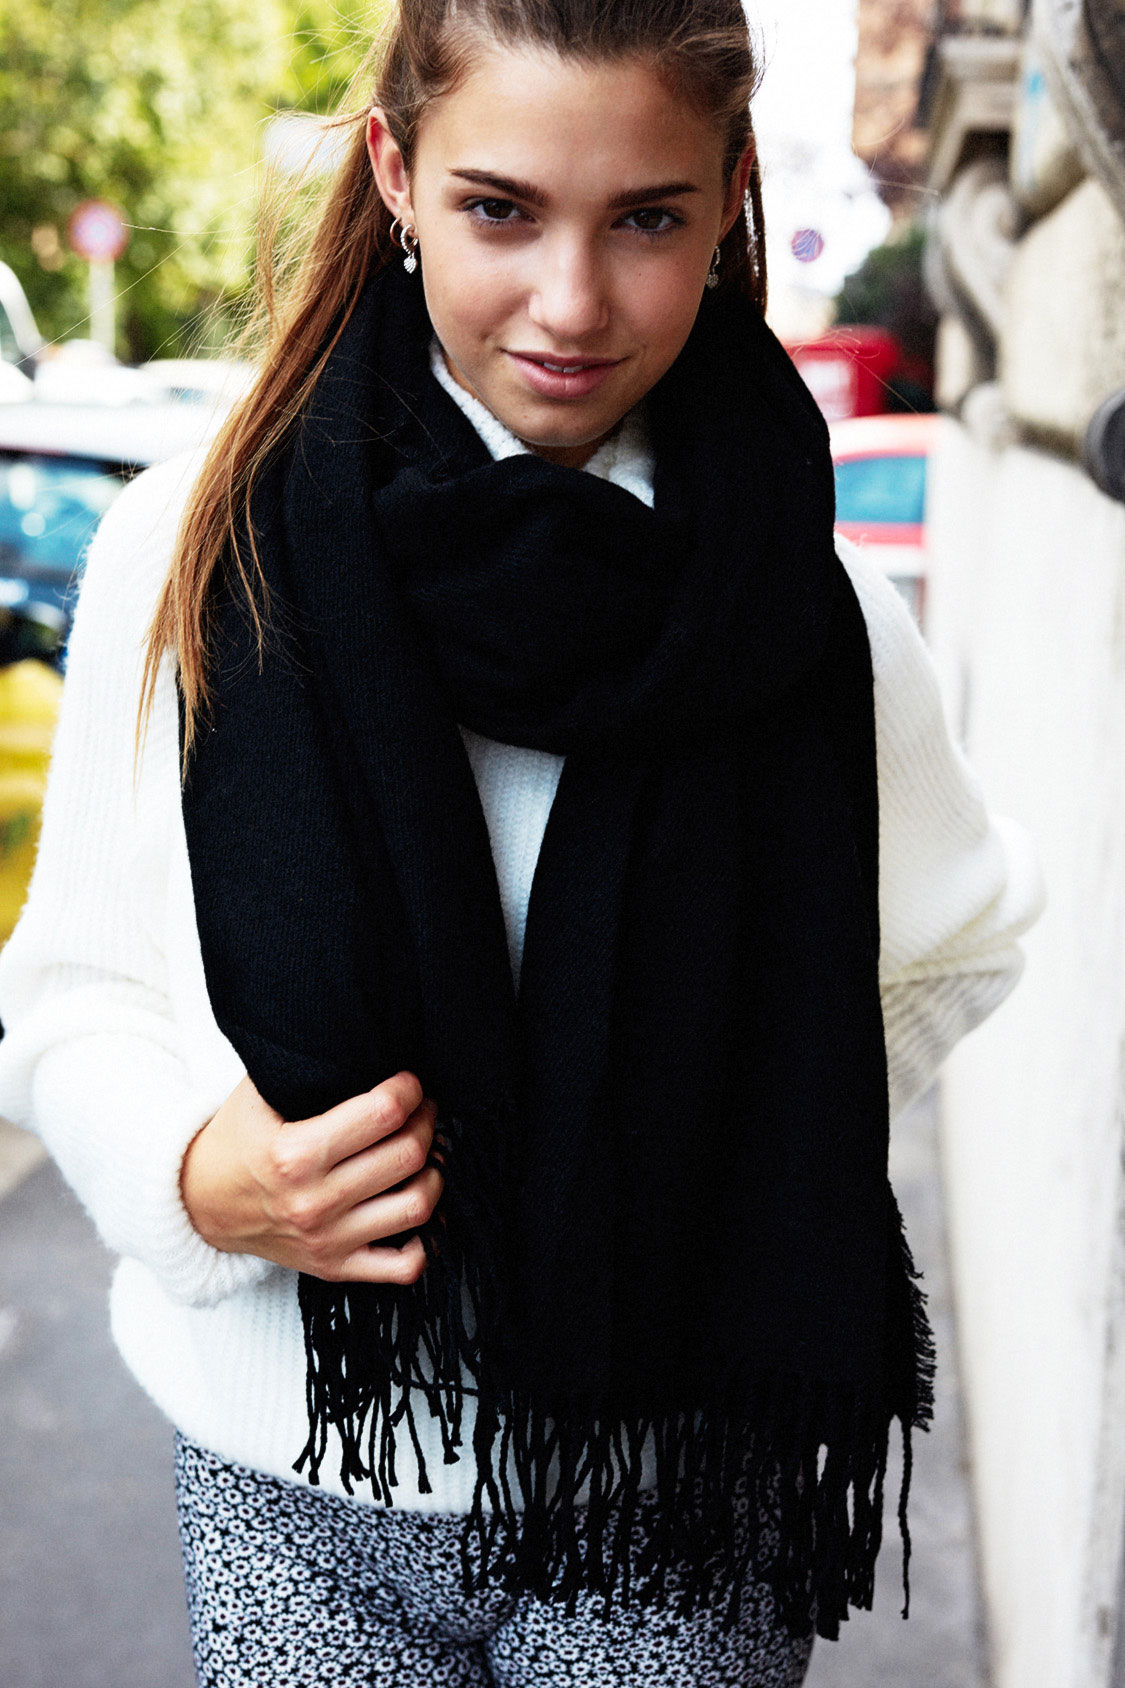 Fringed oversized scarf